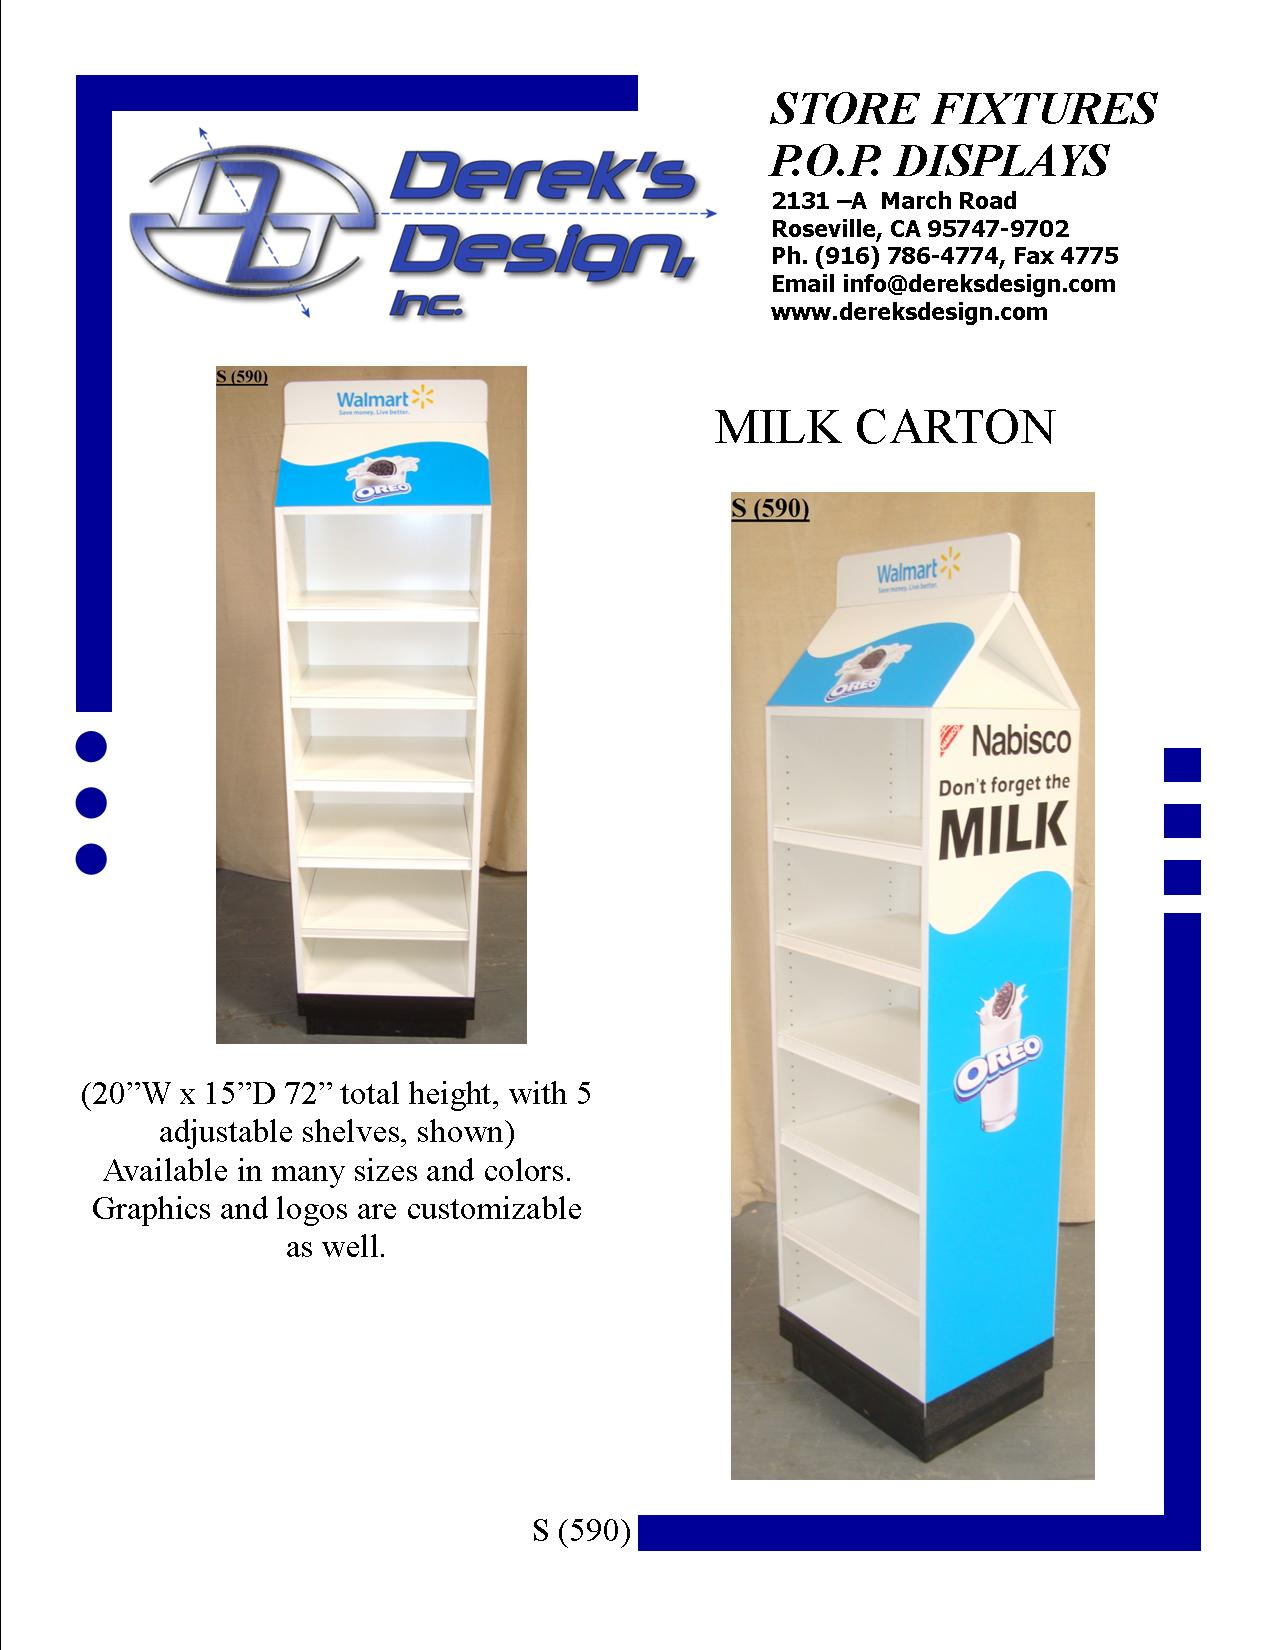 "<A HREF=""MAILTO:ORDERS@DEREKSDESIGN.COM?SUBJECT=S%20(590)&BODY=http://www.dereksdesign.com/gallery/shadowboxes/s-590-milk-carton/"">CLICK HERE FOR INQUIRY </A>"